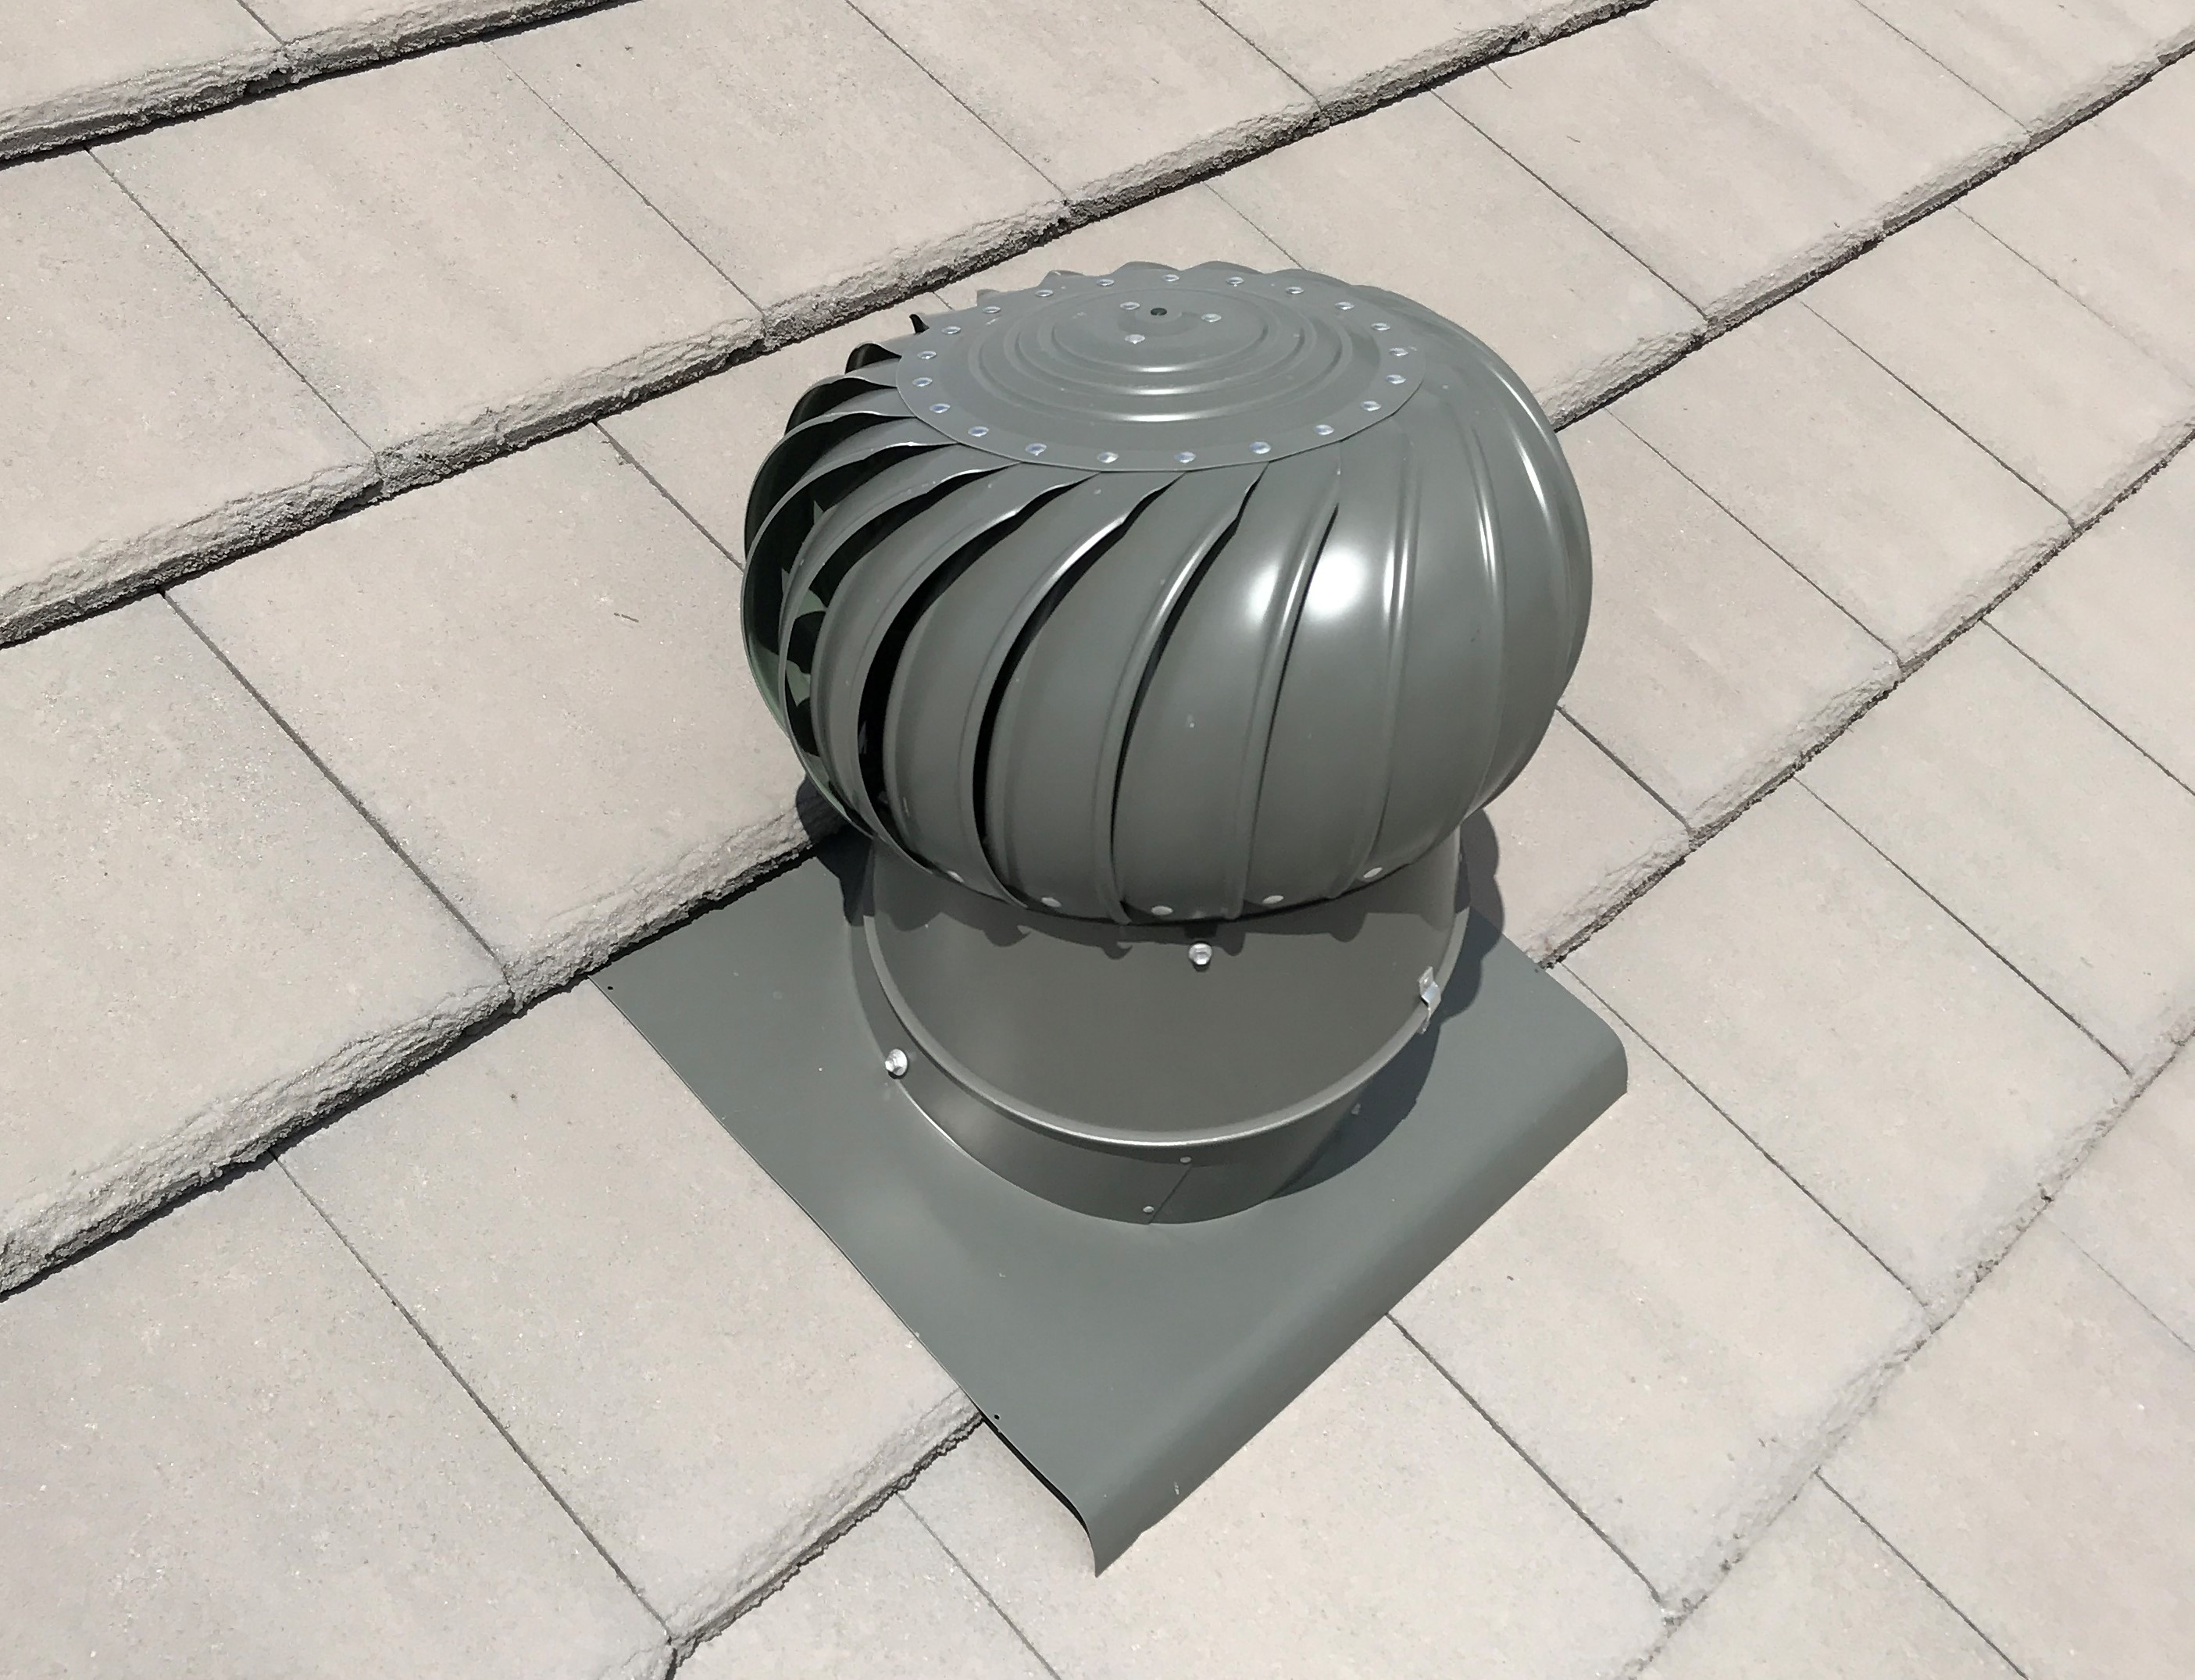 Whirlybird whirly bird wa whirlybirds roofing vents for Cupola vent